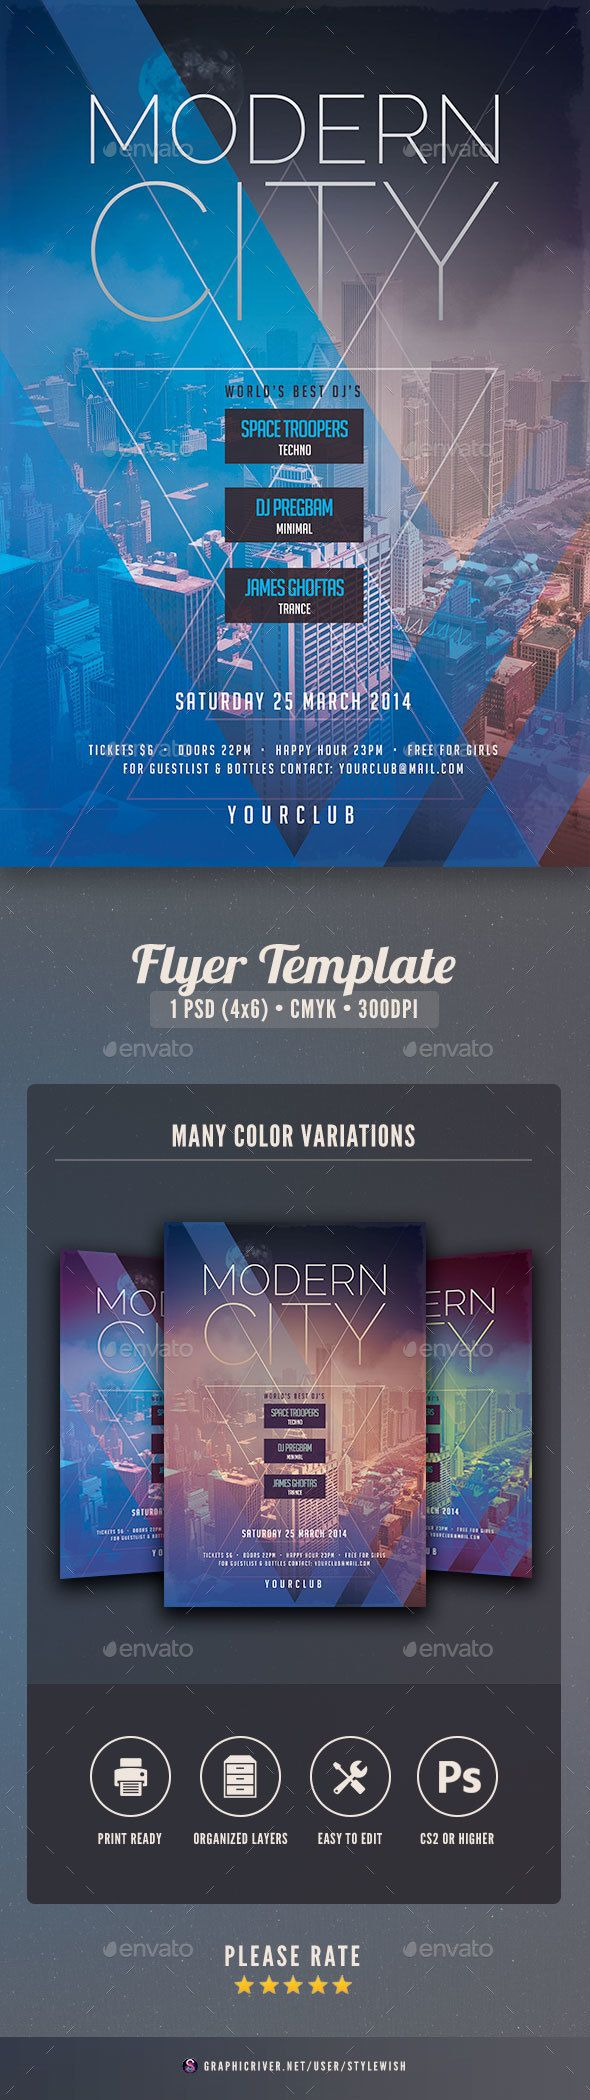 This flyer template is designed with the city as main inspiration. The bold colors and shapes fit well with the bustle of the city. You can use this flyer for all types of events: a famous club party, an underground dance party, an urban music event, an old school rave session, an alternative music festival, a minimal dj set… With this poster design you are ready to pull in crowds!